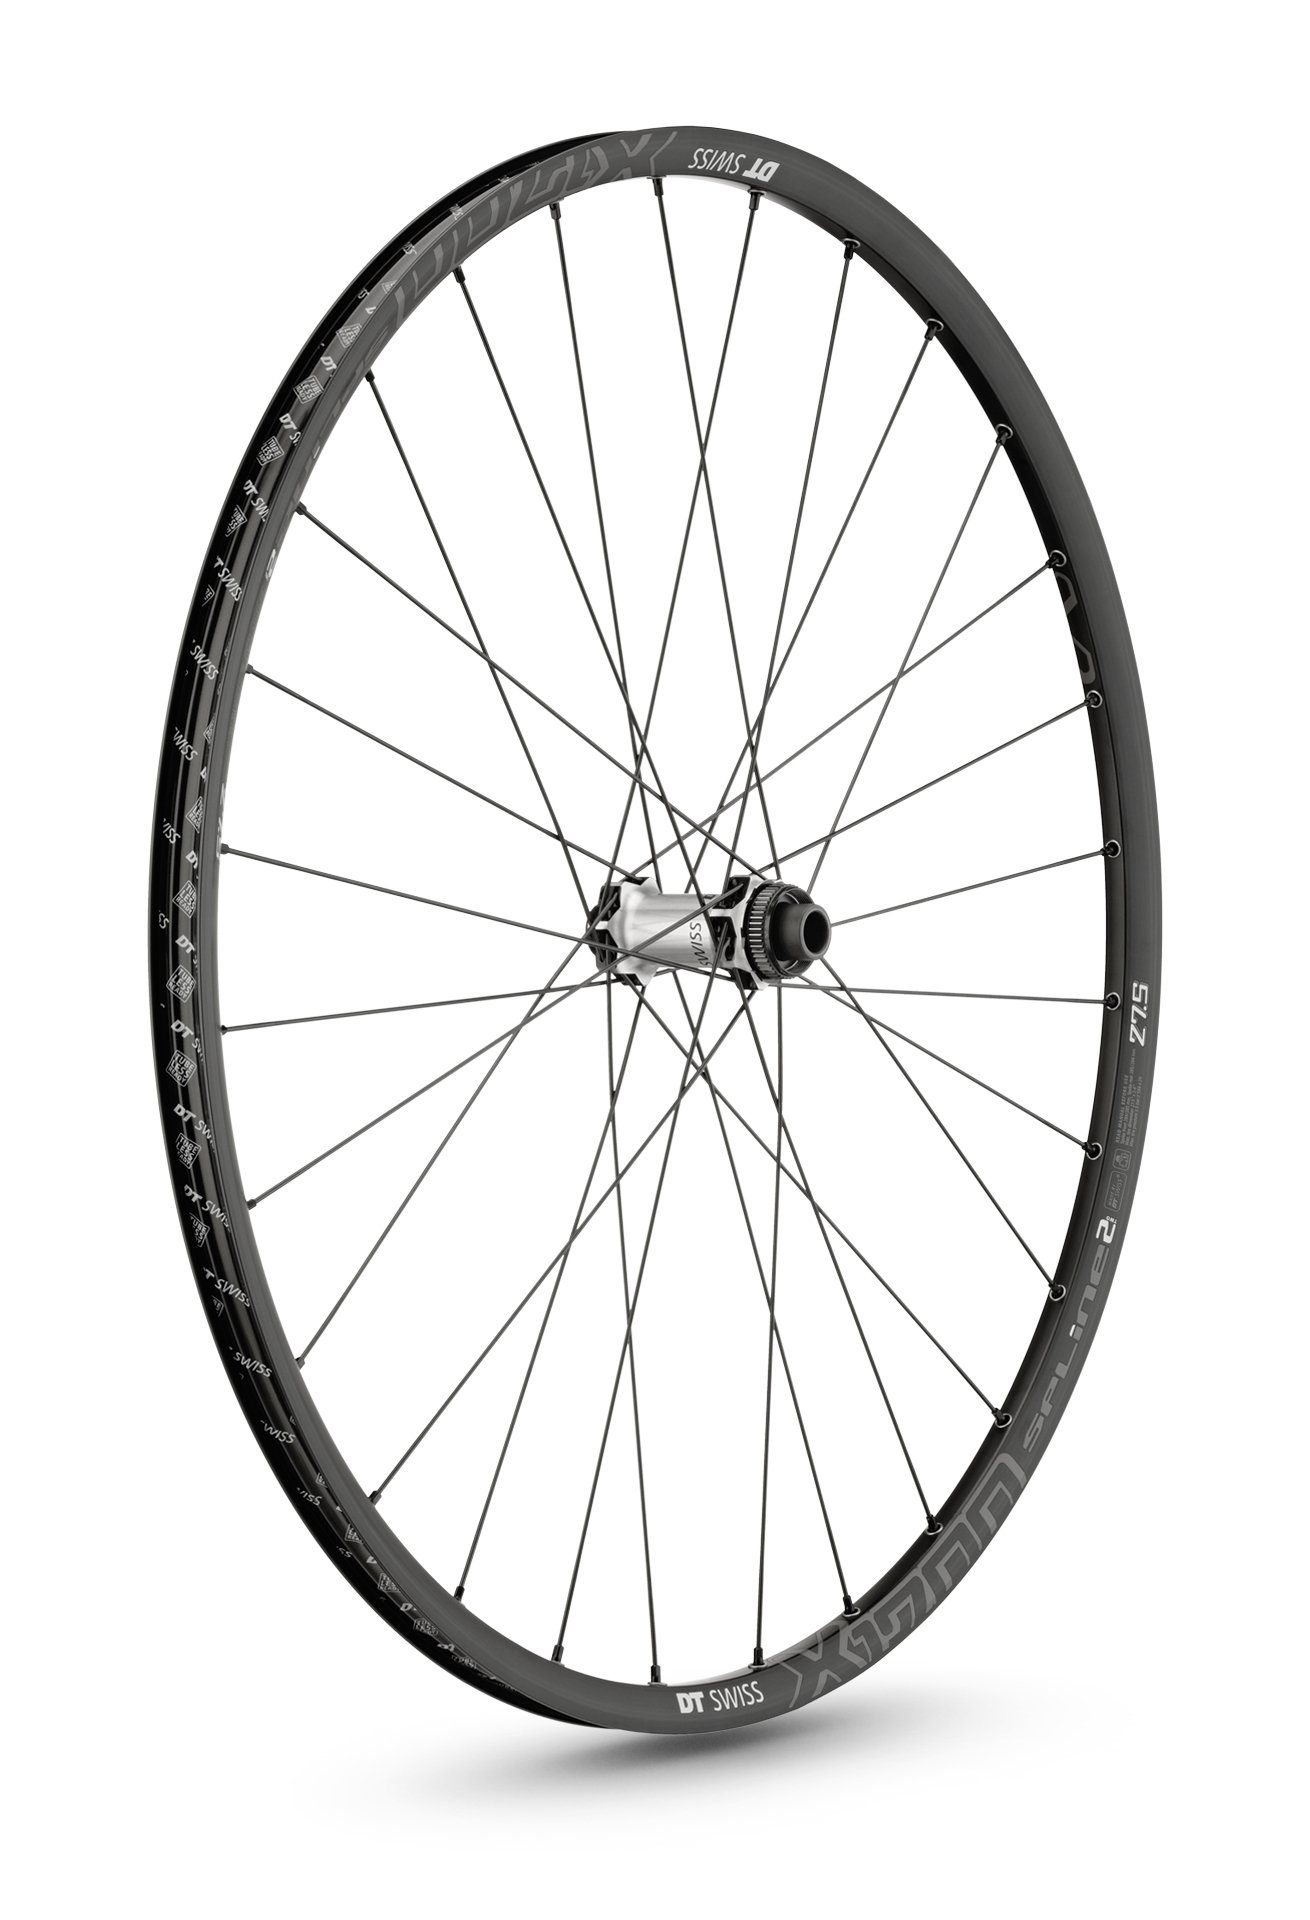 "DT Swiss Laufrad »X 1700 Spline Two LRS 29"" VR 100/15mm«"